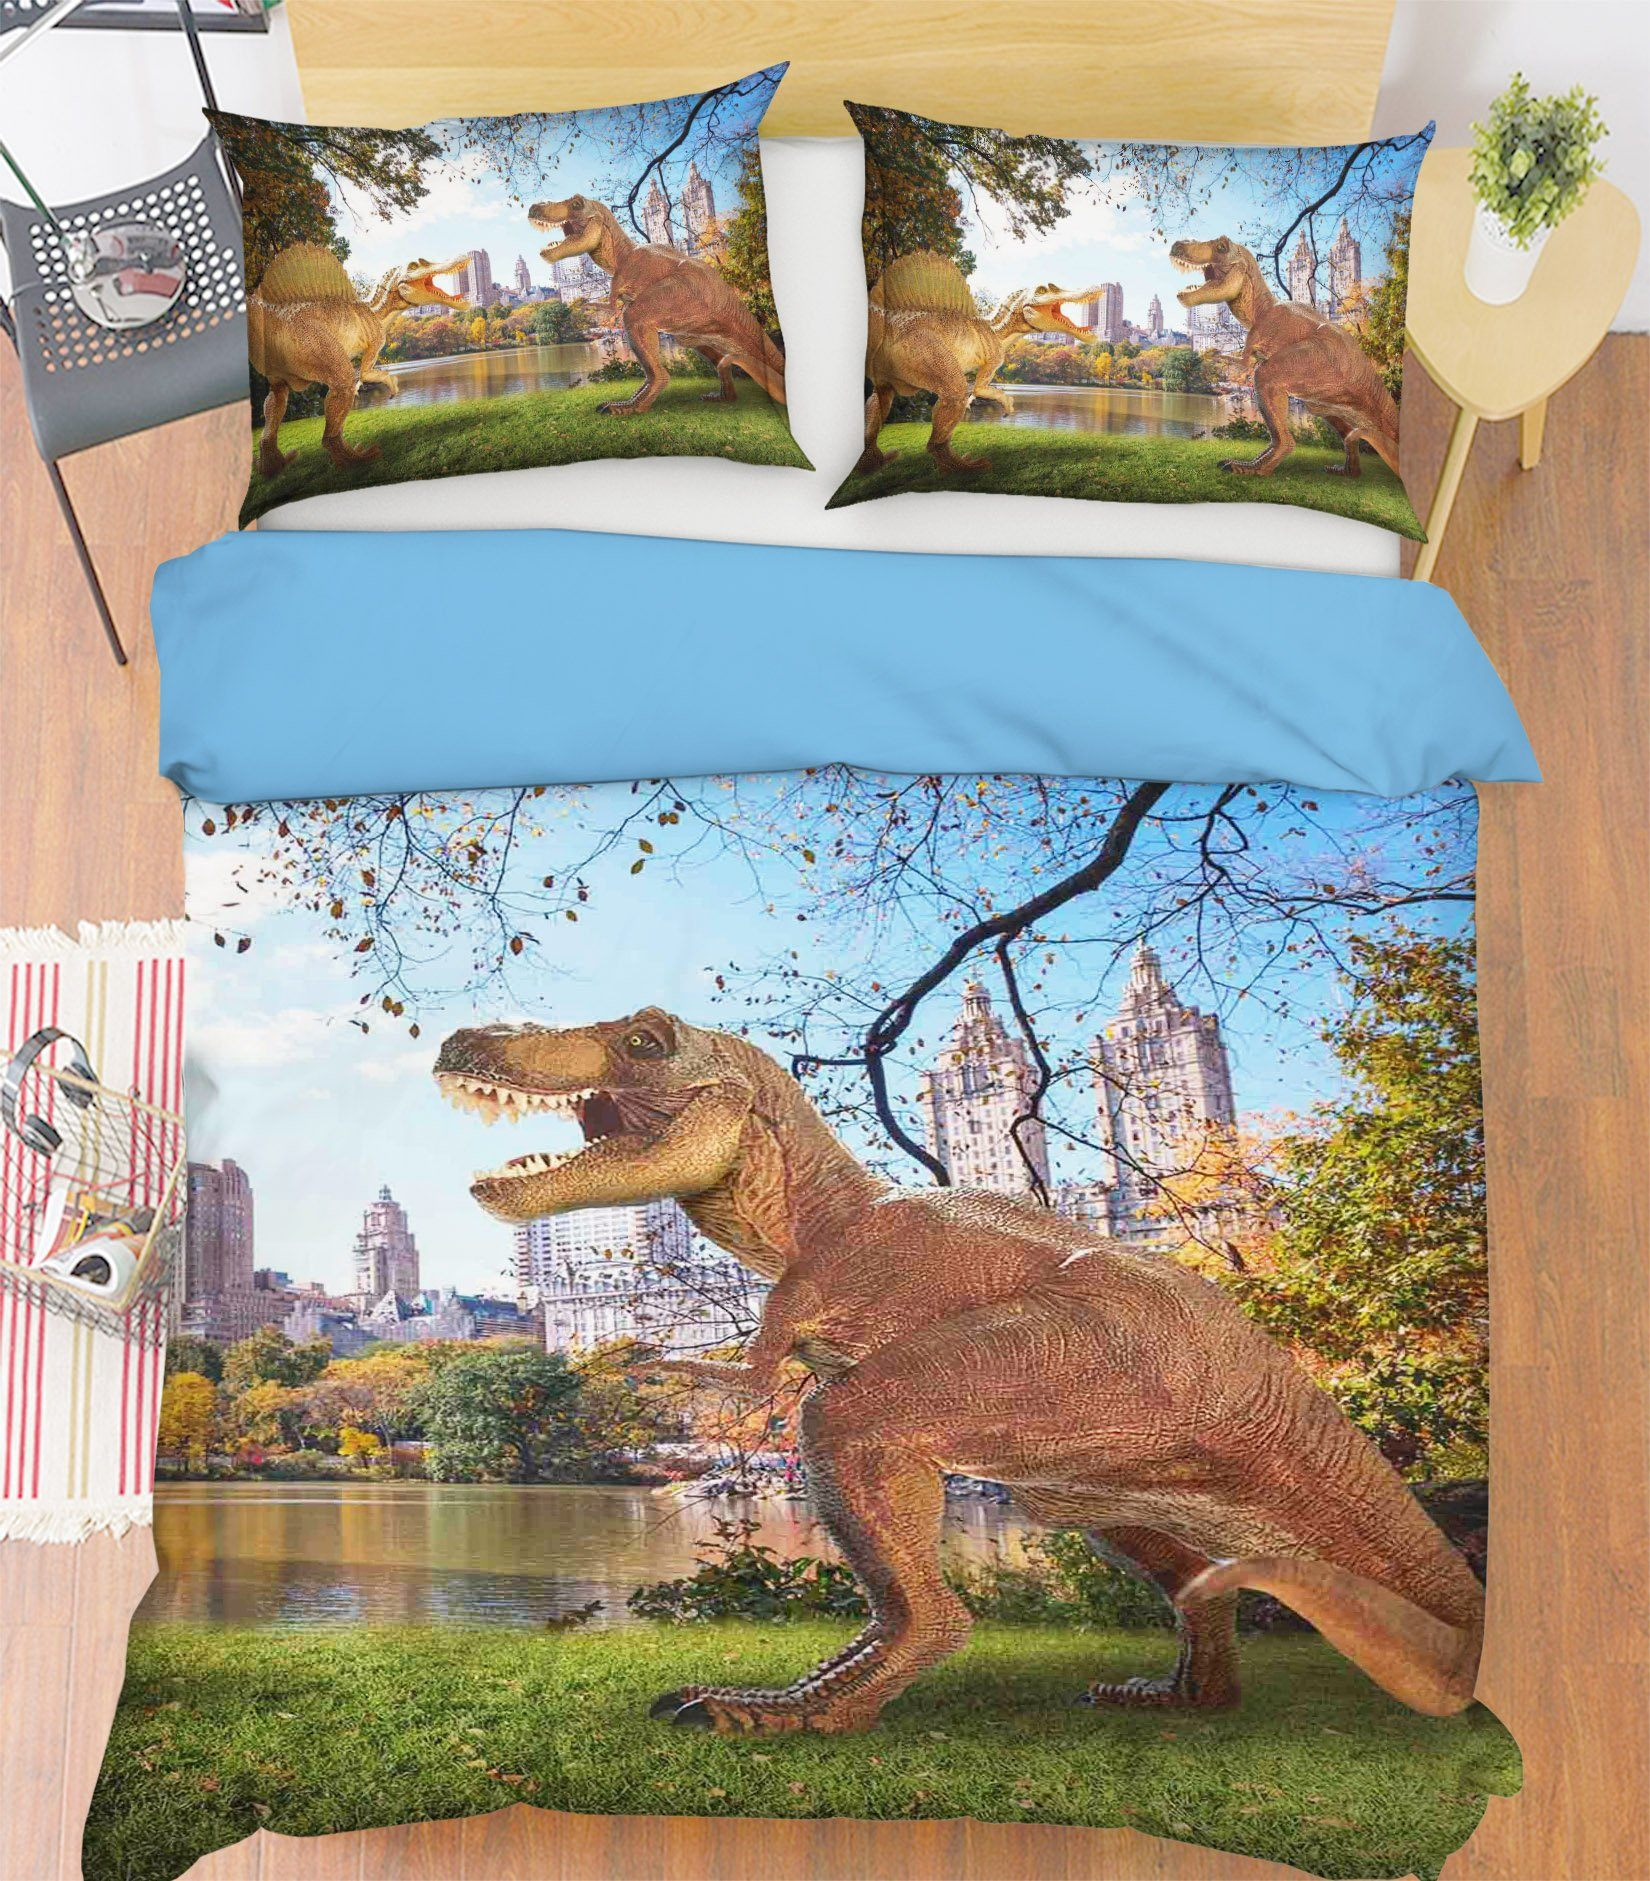 3D New York Dinosaurs 086 Bed Pillowcases Quilt Wallpaper AJ Wallpaper